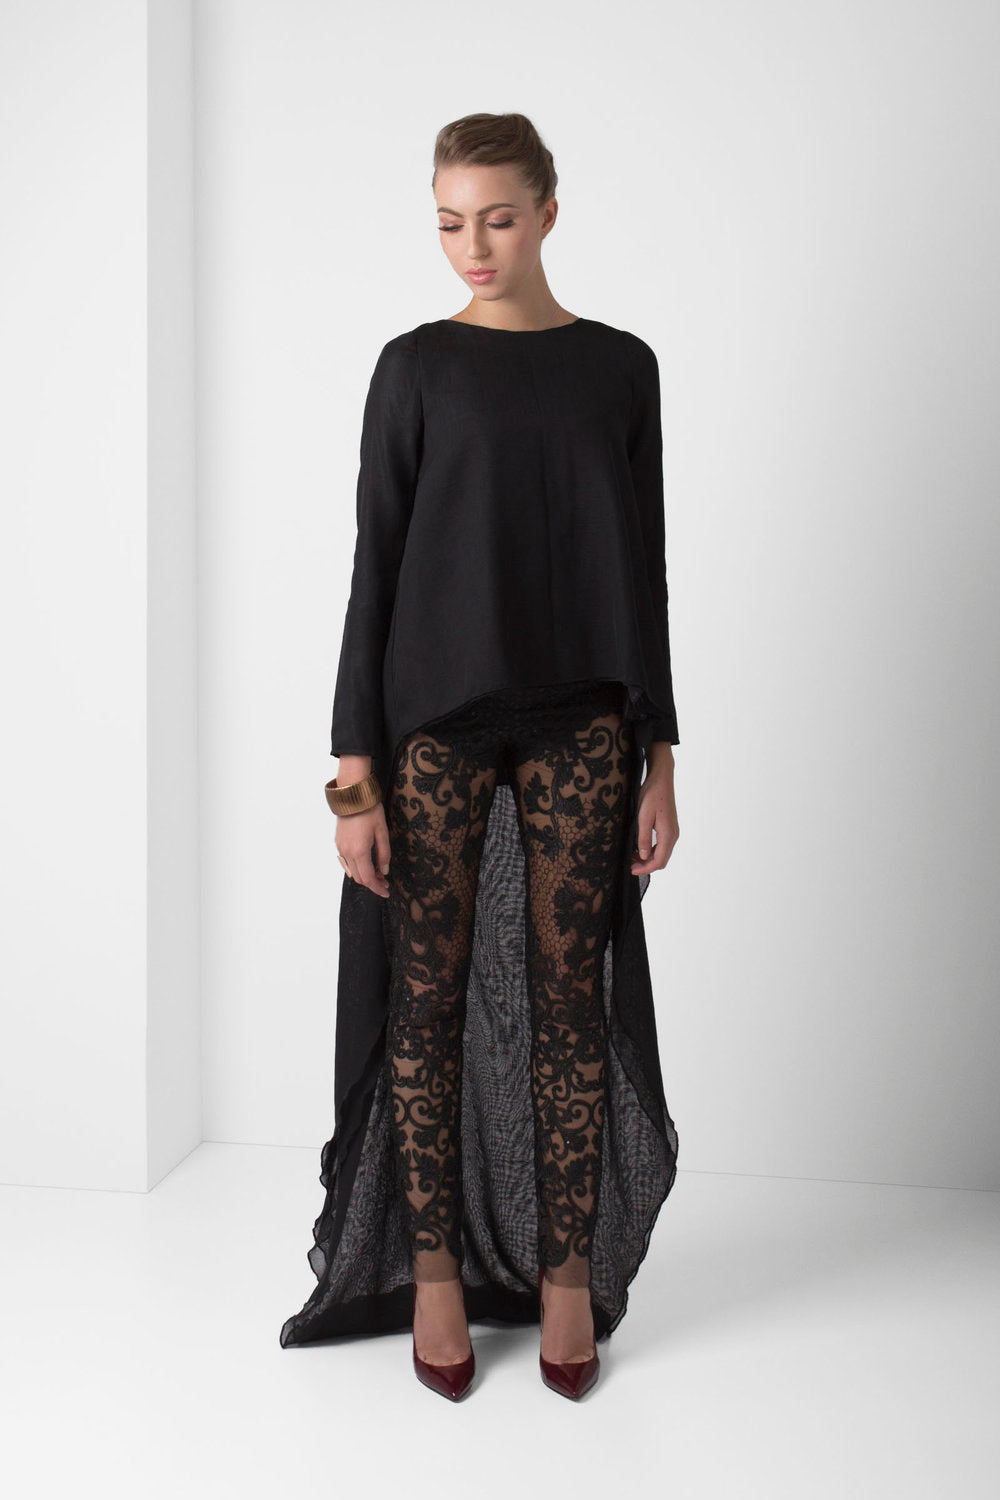 Black Unlined Embroidered Lace Pants - pacorogiene